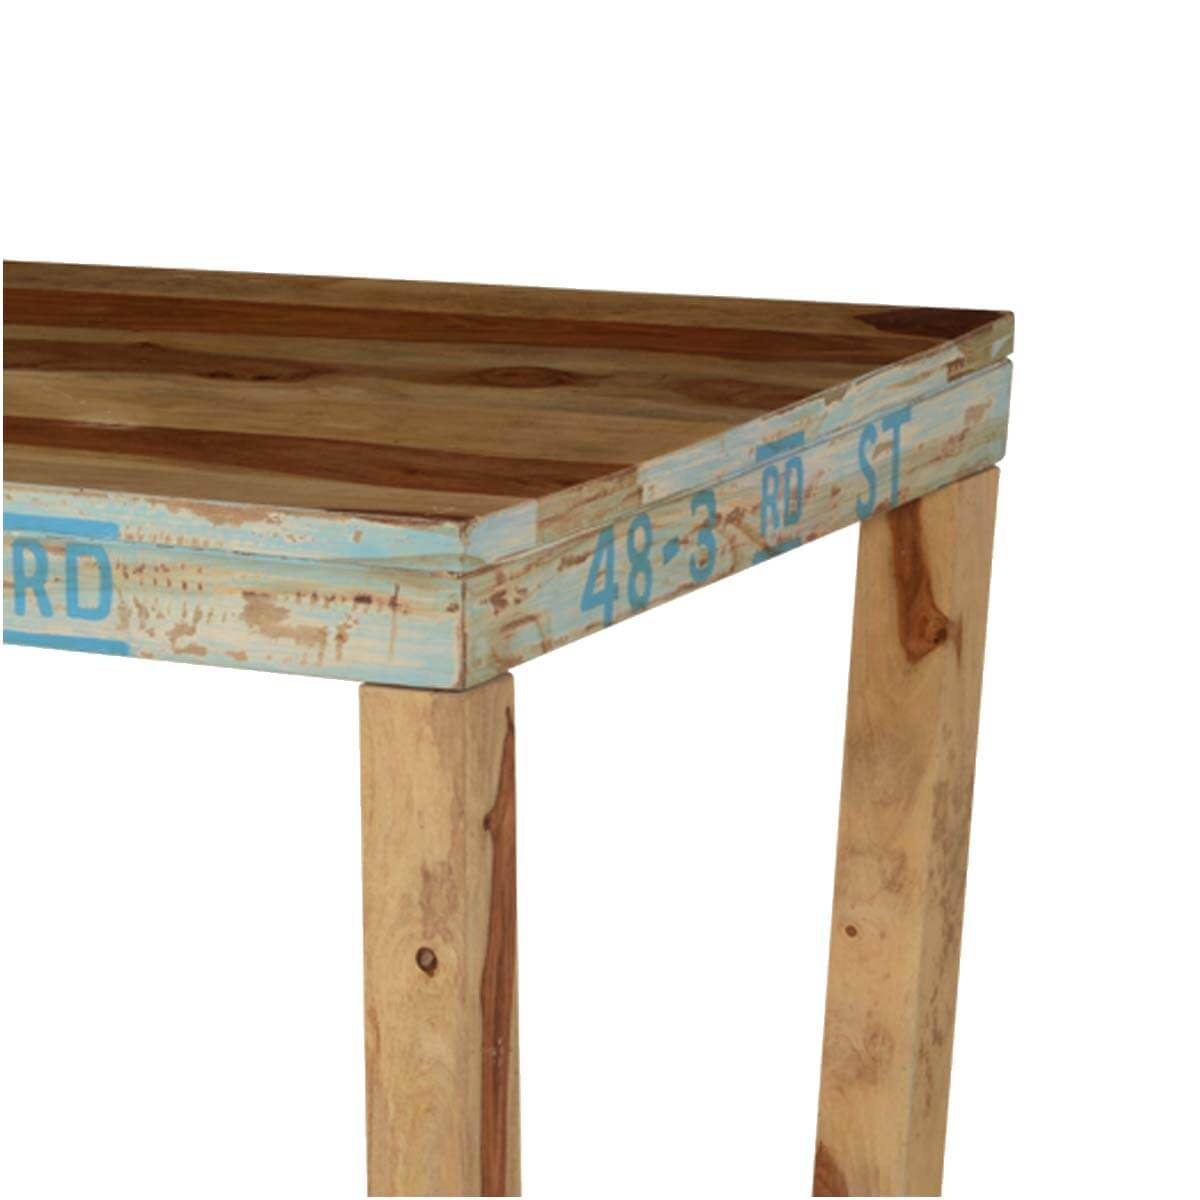 Natural Rustic Solid Wood Rectangular Dining Table : 74354 from www.sierralivingconcepts.com size 1200 x 1200 jpeg 78kB